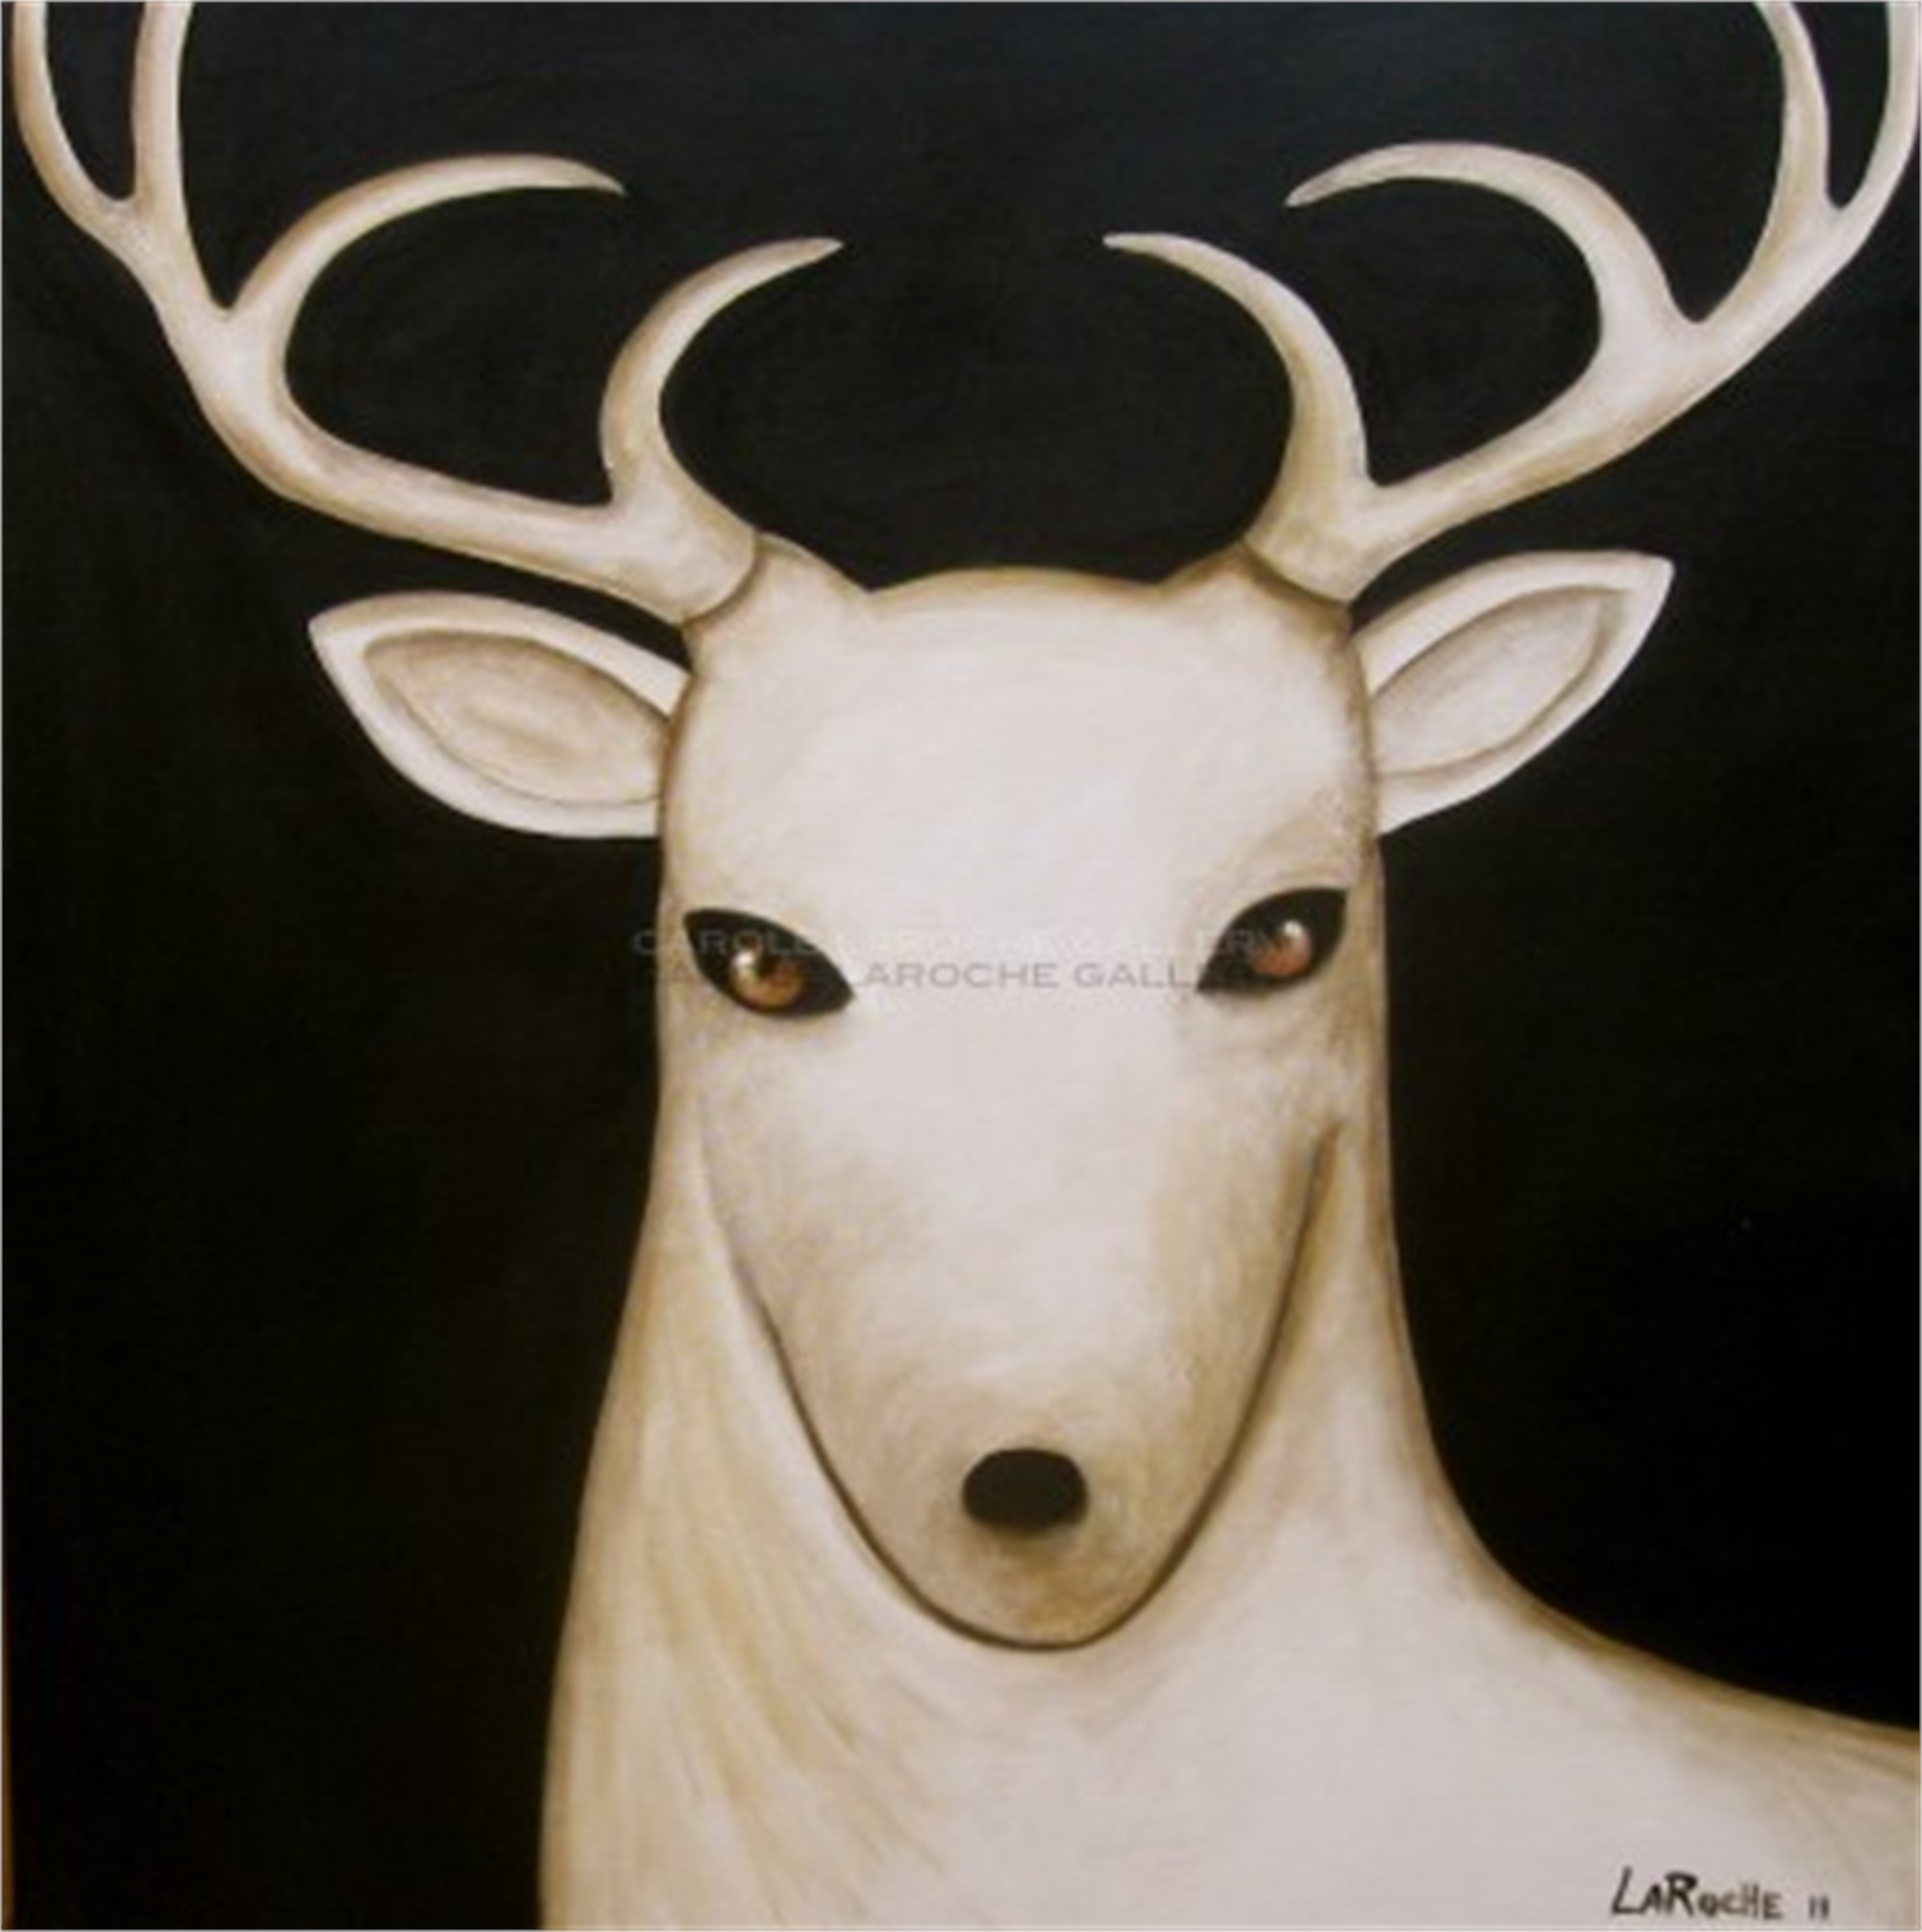 "NIGHT SKY/SINGLE WHITE DEER - limited edition giclee on canvas (large) 40""x40"" $2800 or (medium) 30""x30"" $2200 by Carole LaRoche"